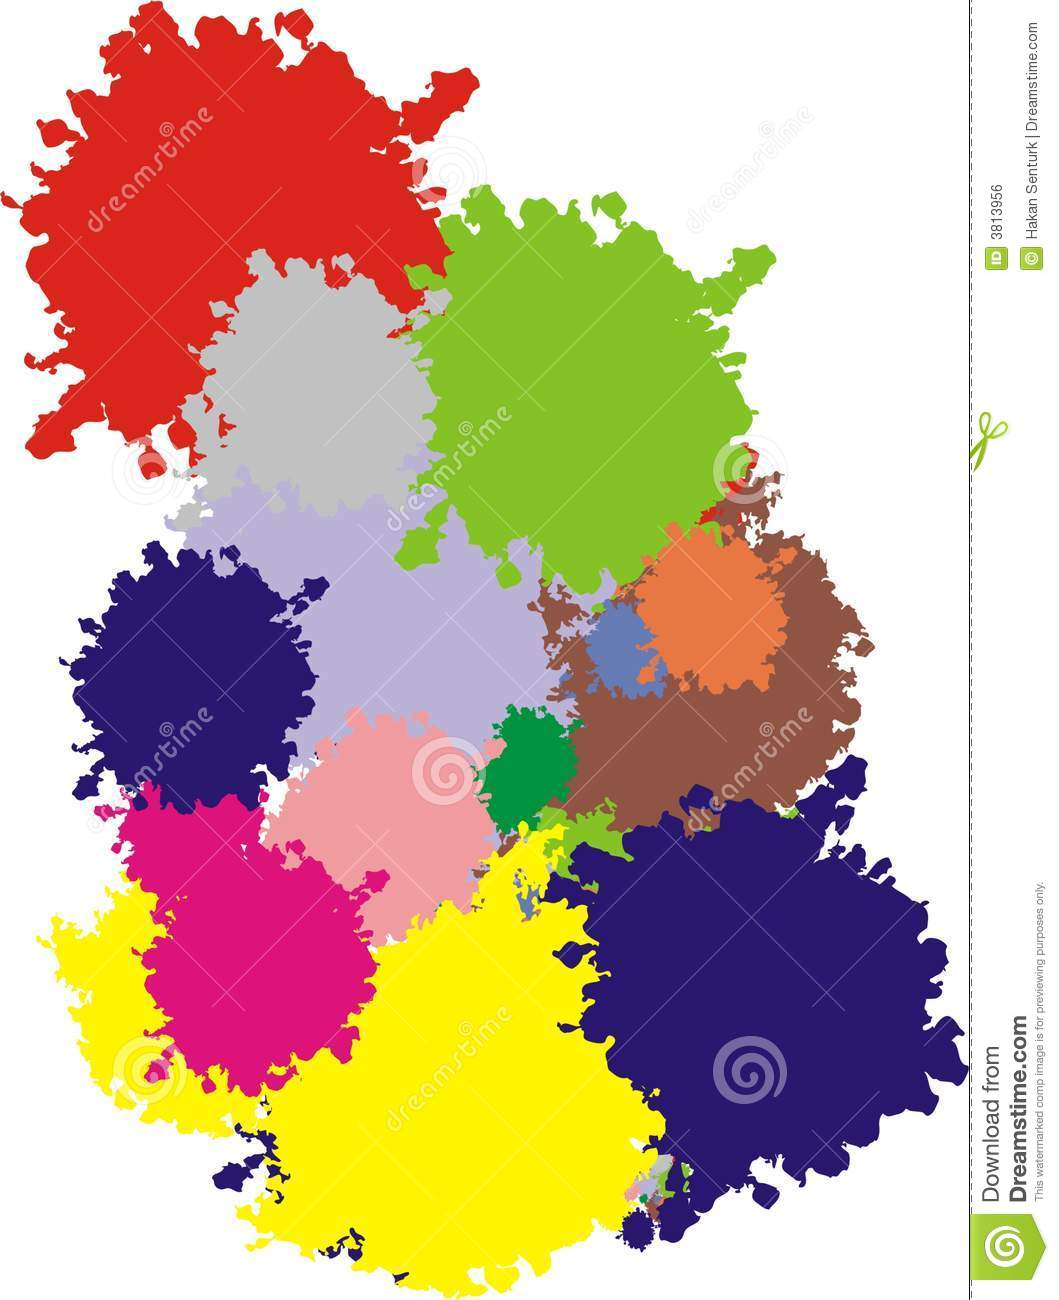 Colors for painting